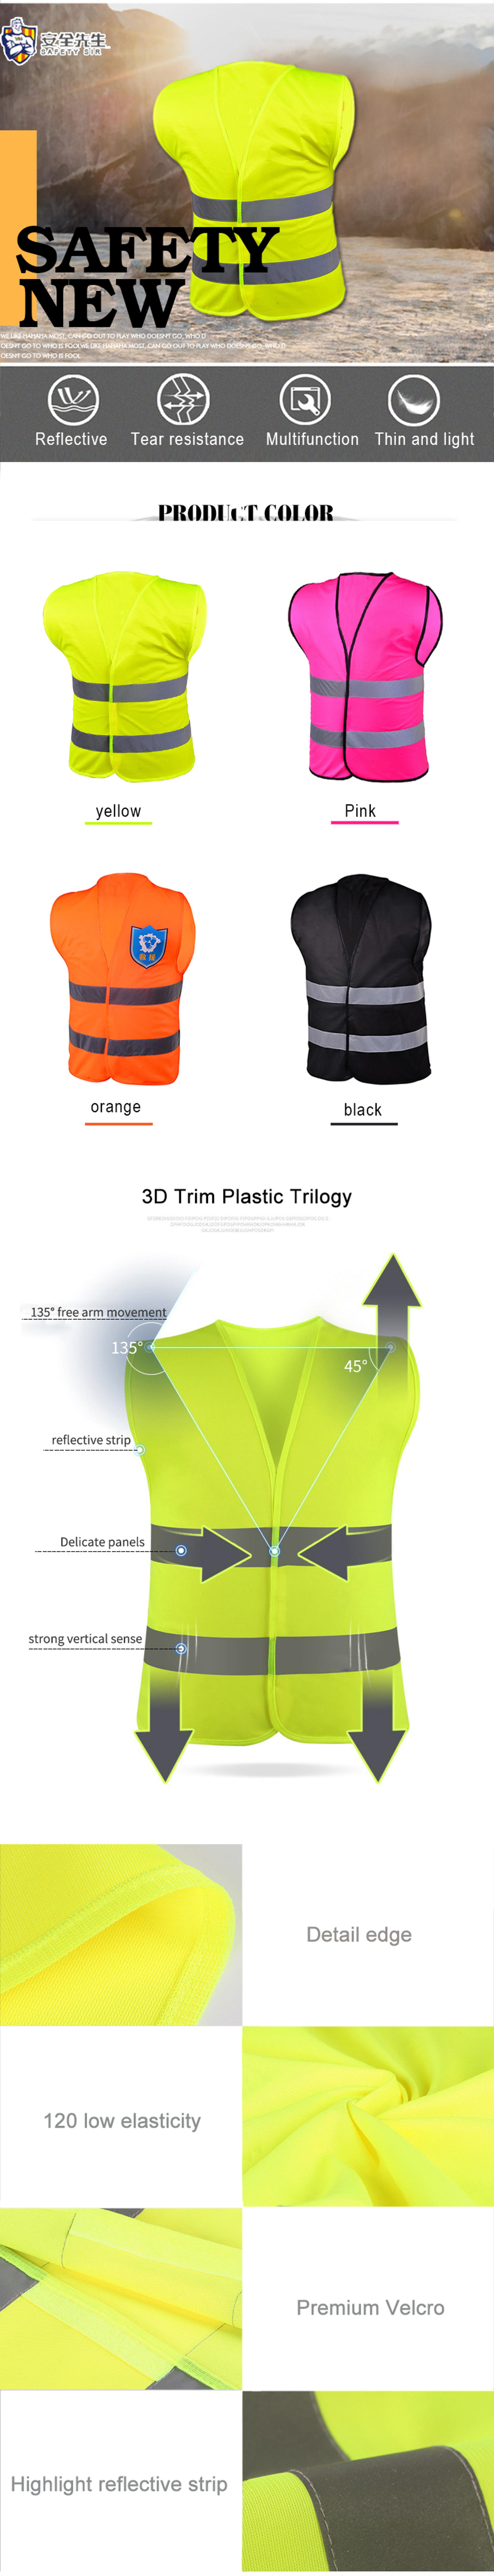 Reflective Vest Knitting Polyester Fabric Kids Reflective Safety Vest Children High Visibility Security DHL Freeshipping